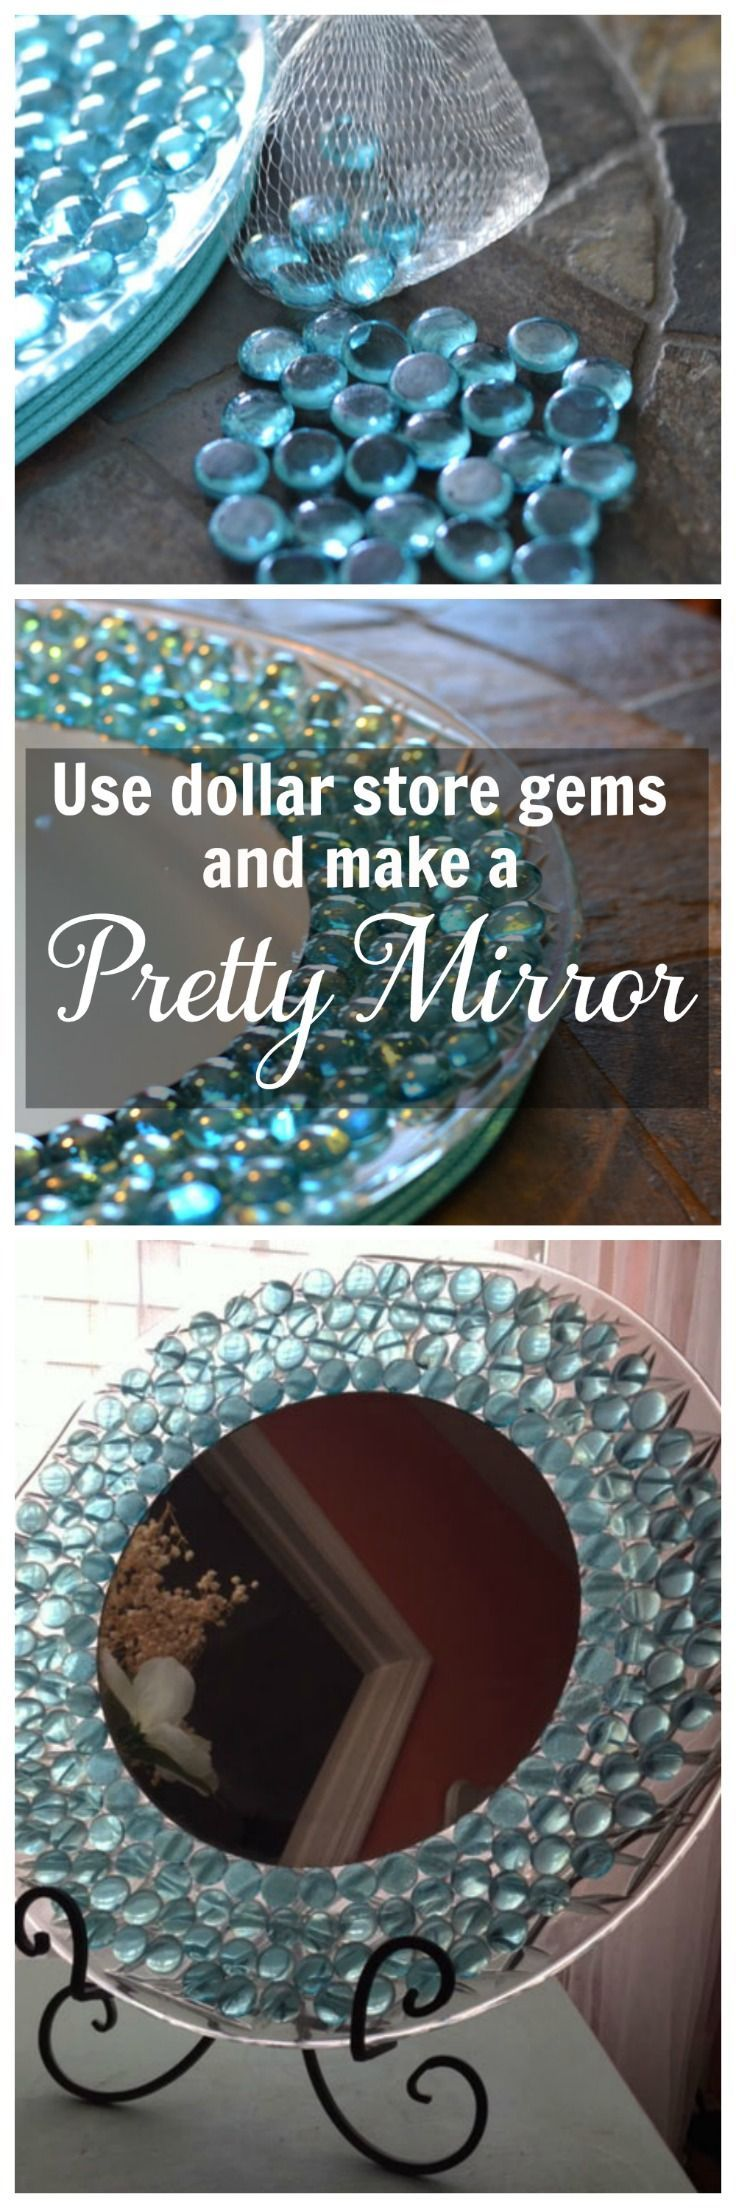 Diy oval bathroom mirrors frame best decor things - Best 25 Mirror Ideas Ideas On Pinterest Diy Mirror Framed Mirrors Inspiration And Framed Mirror Design